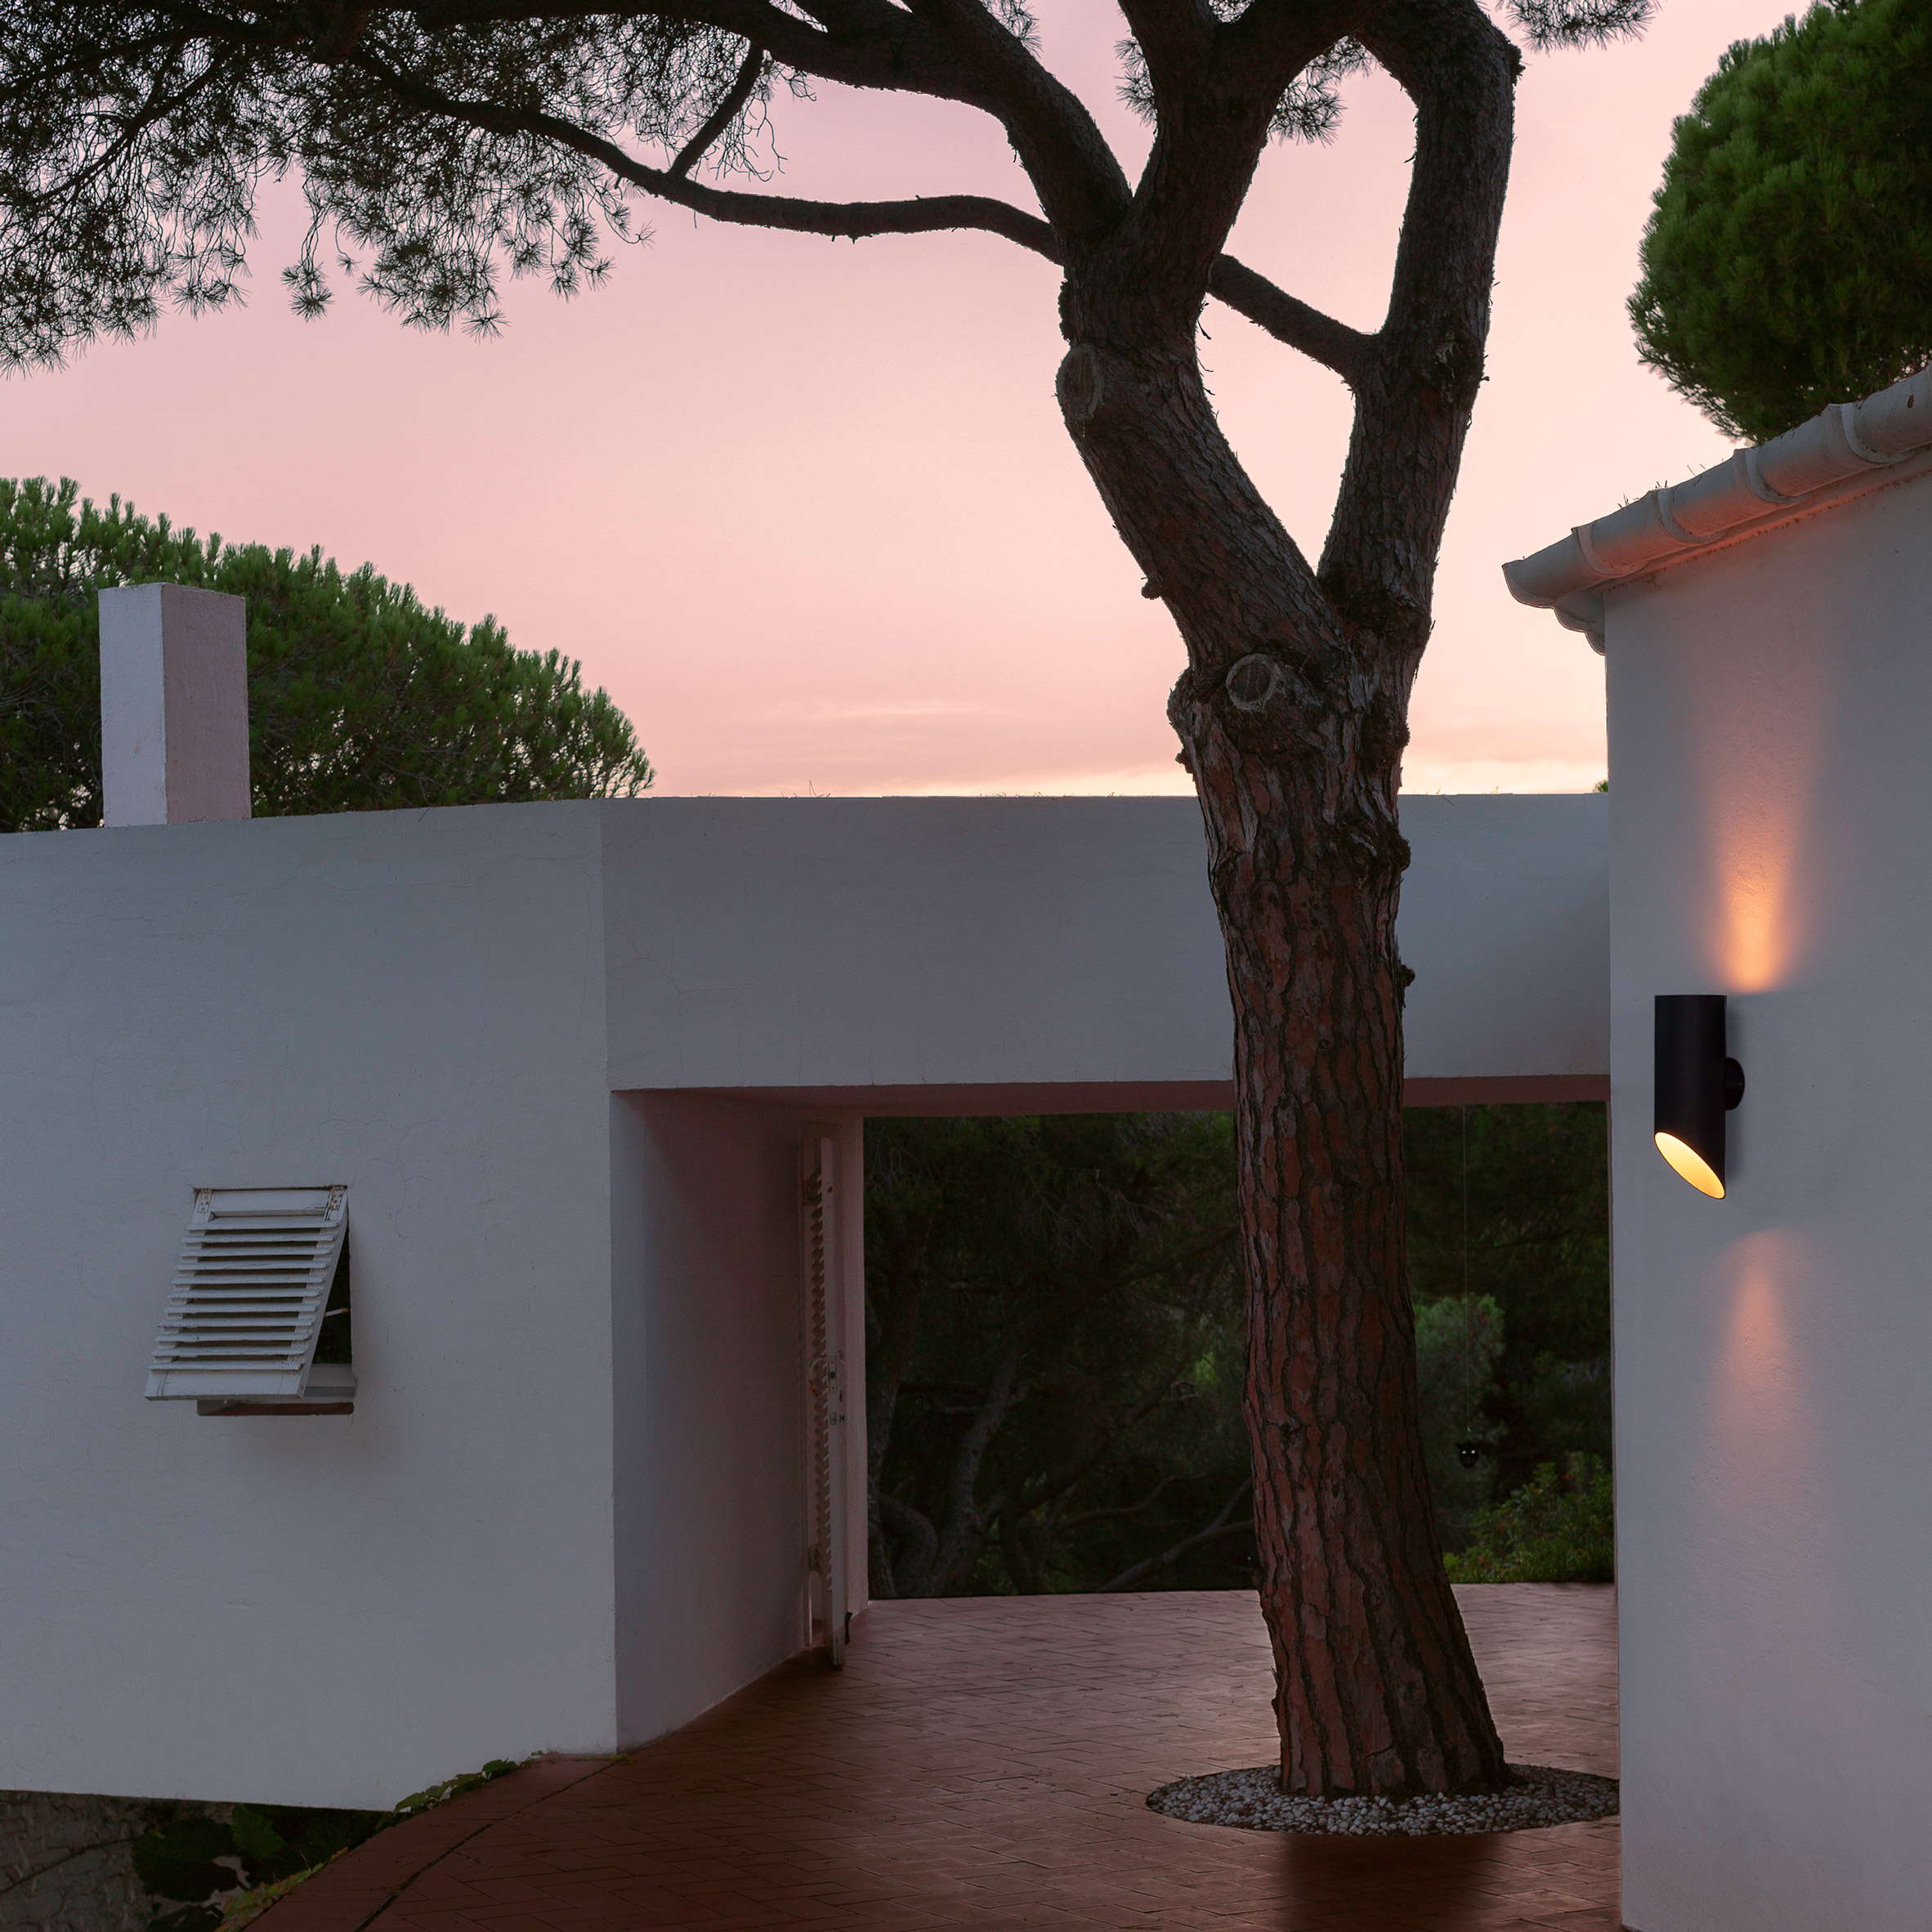 Elipse exterior wall light by by Josep Lluís Xuclà for Marset